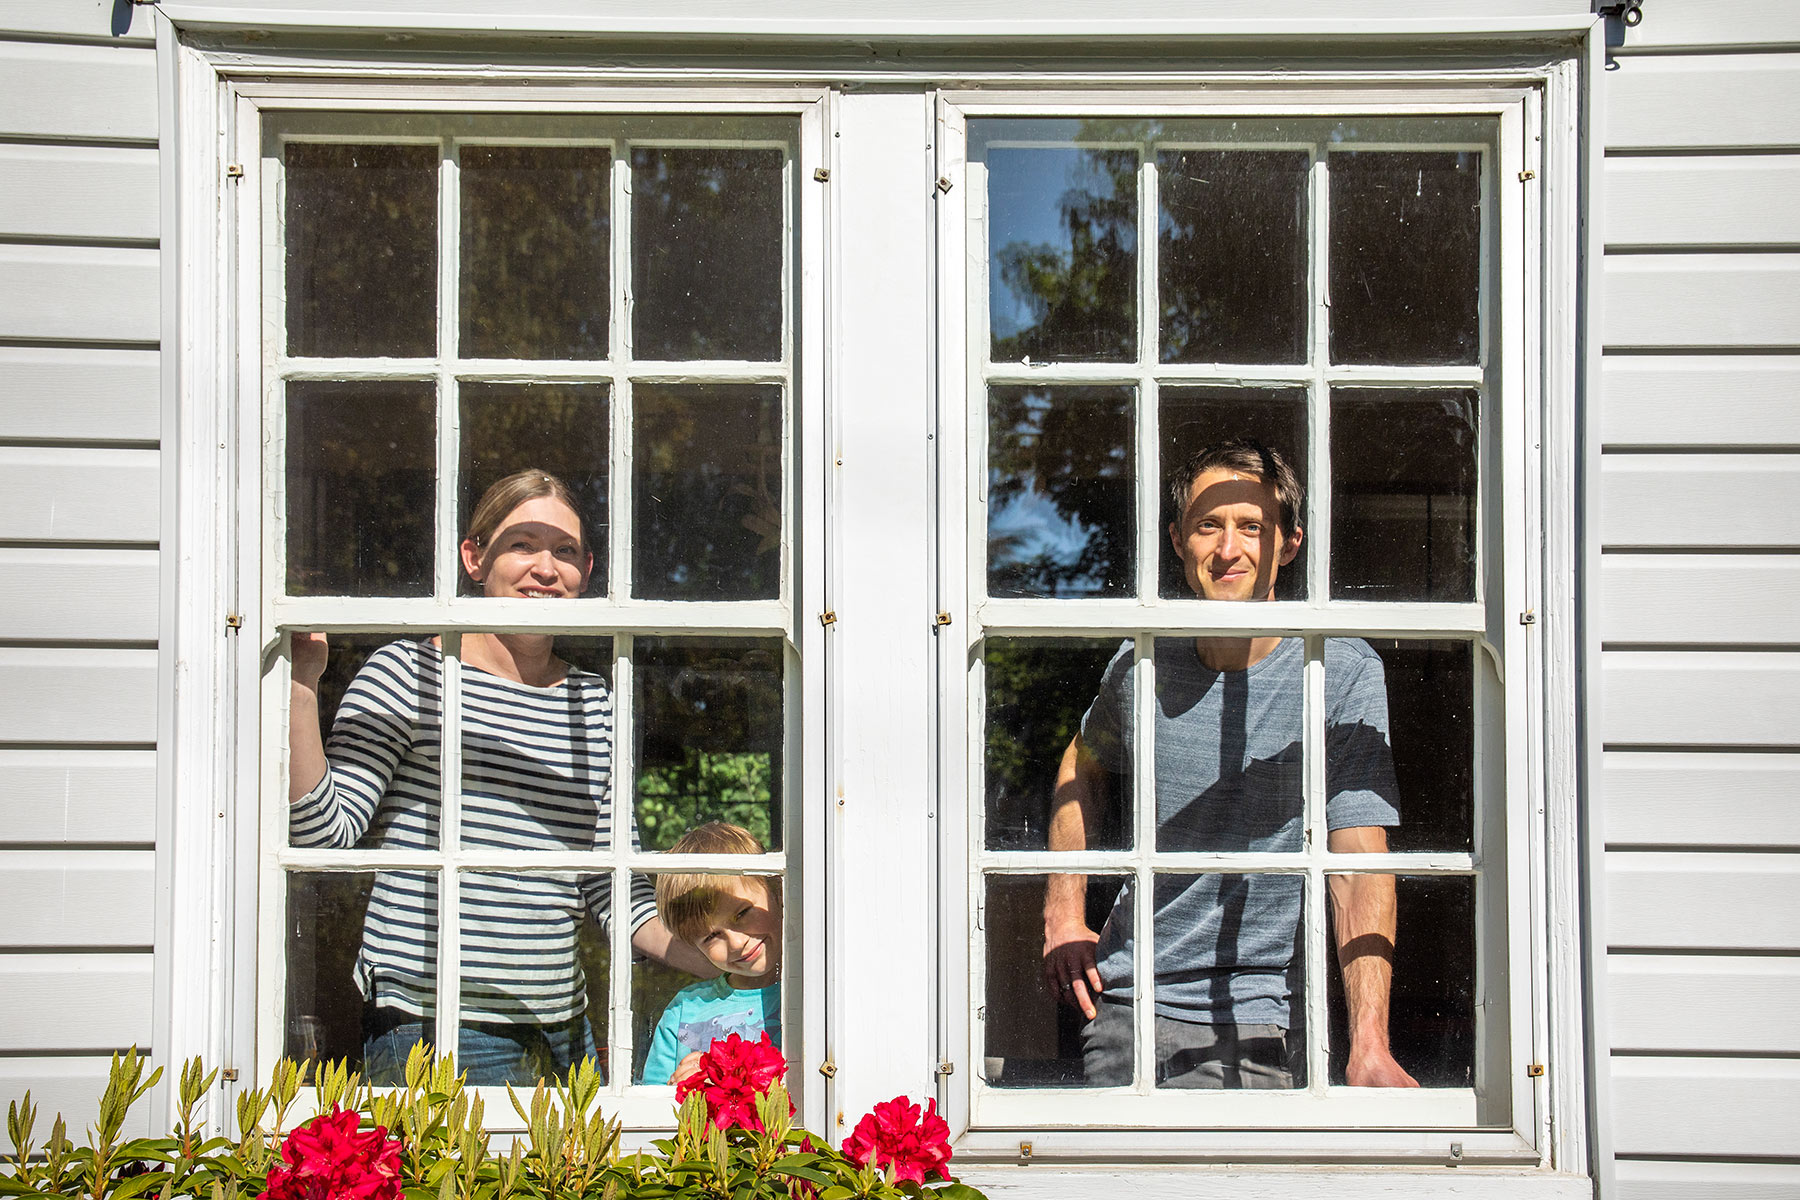 Editorial portrait of family in their window during COVID-19 outbreak